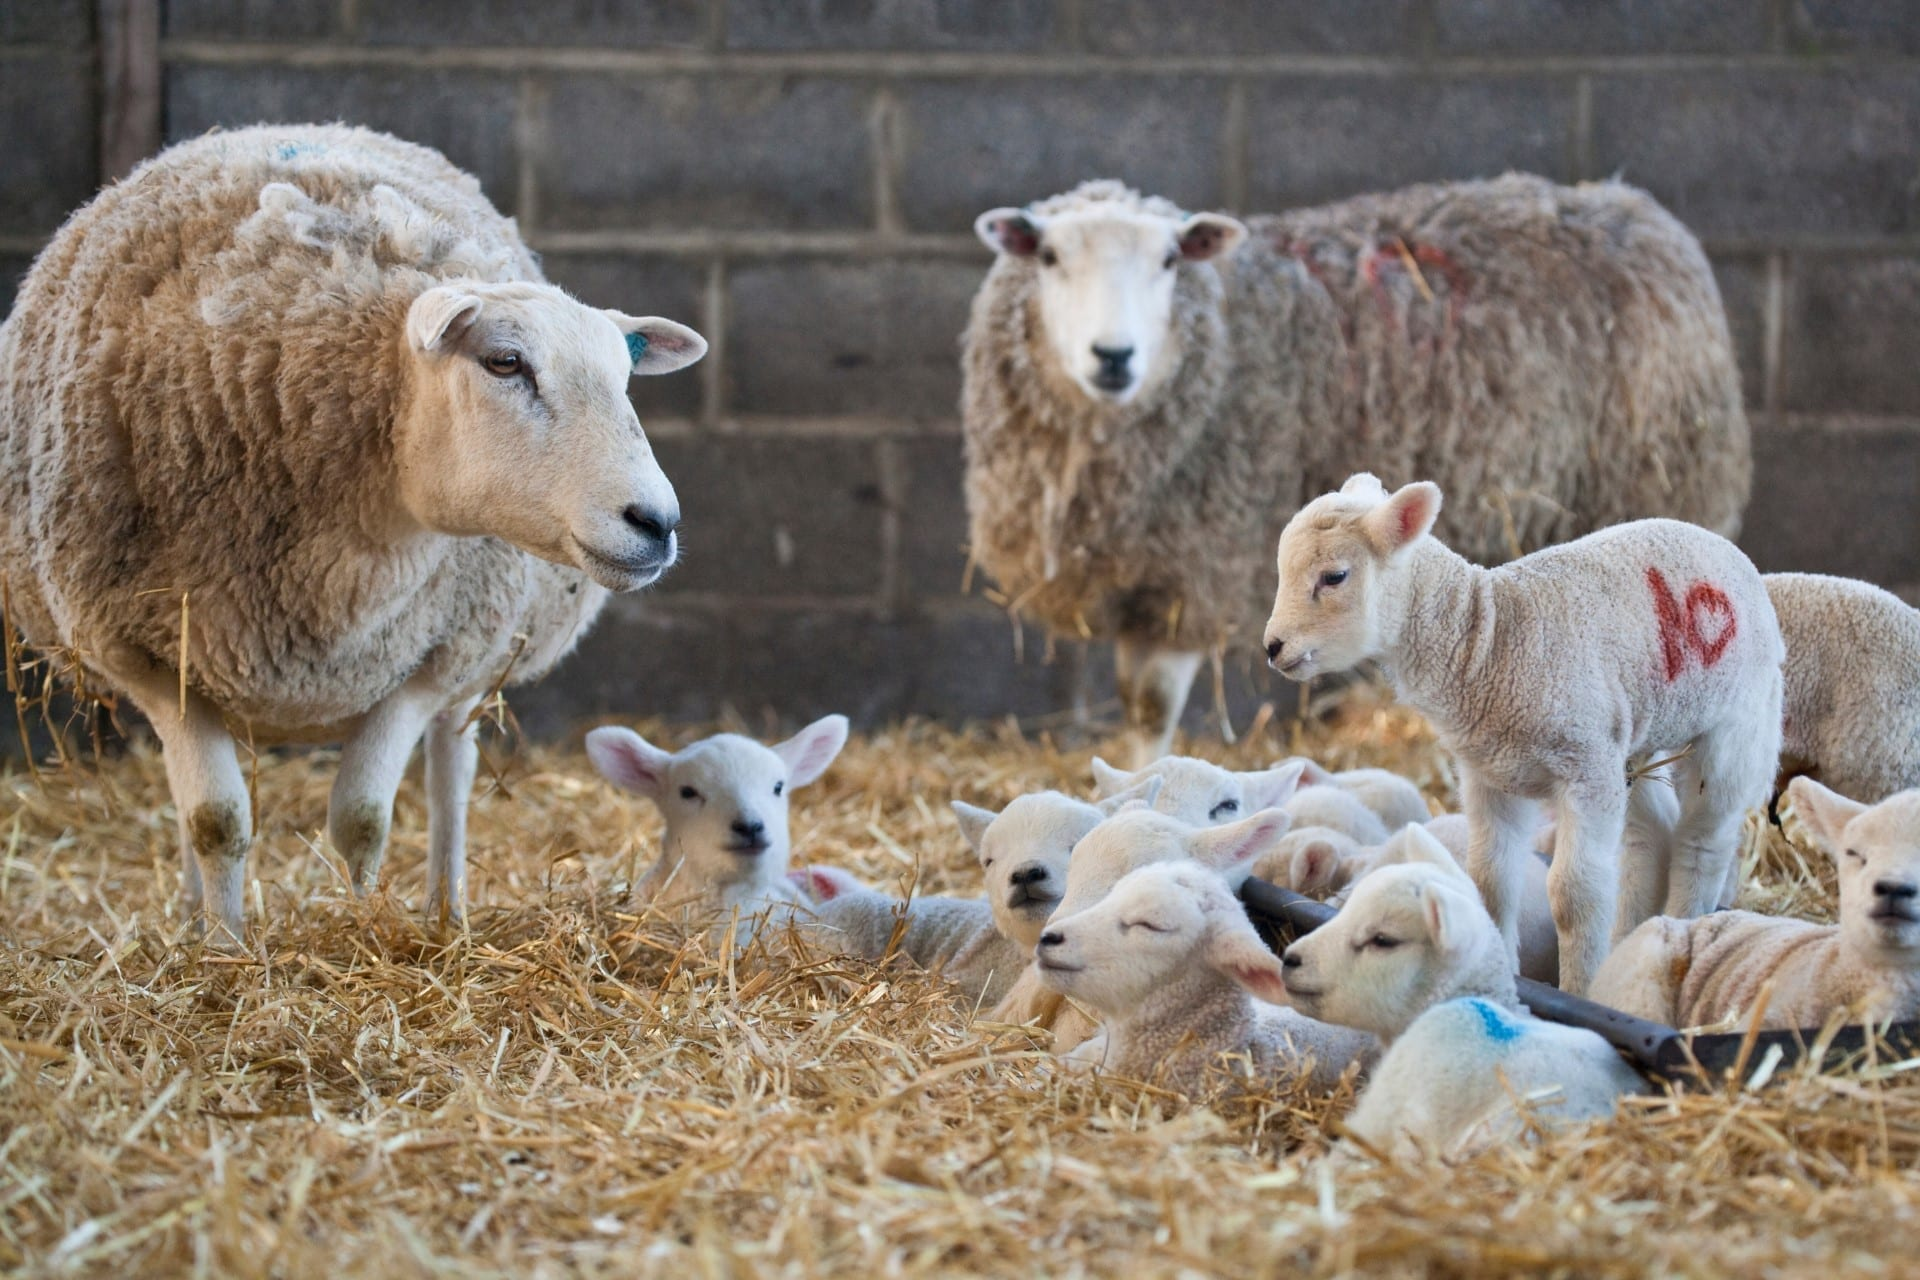 Sheep and Lambs relaxing in the Hay